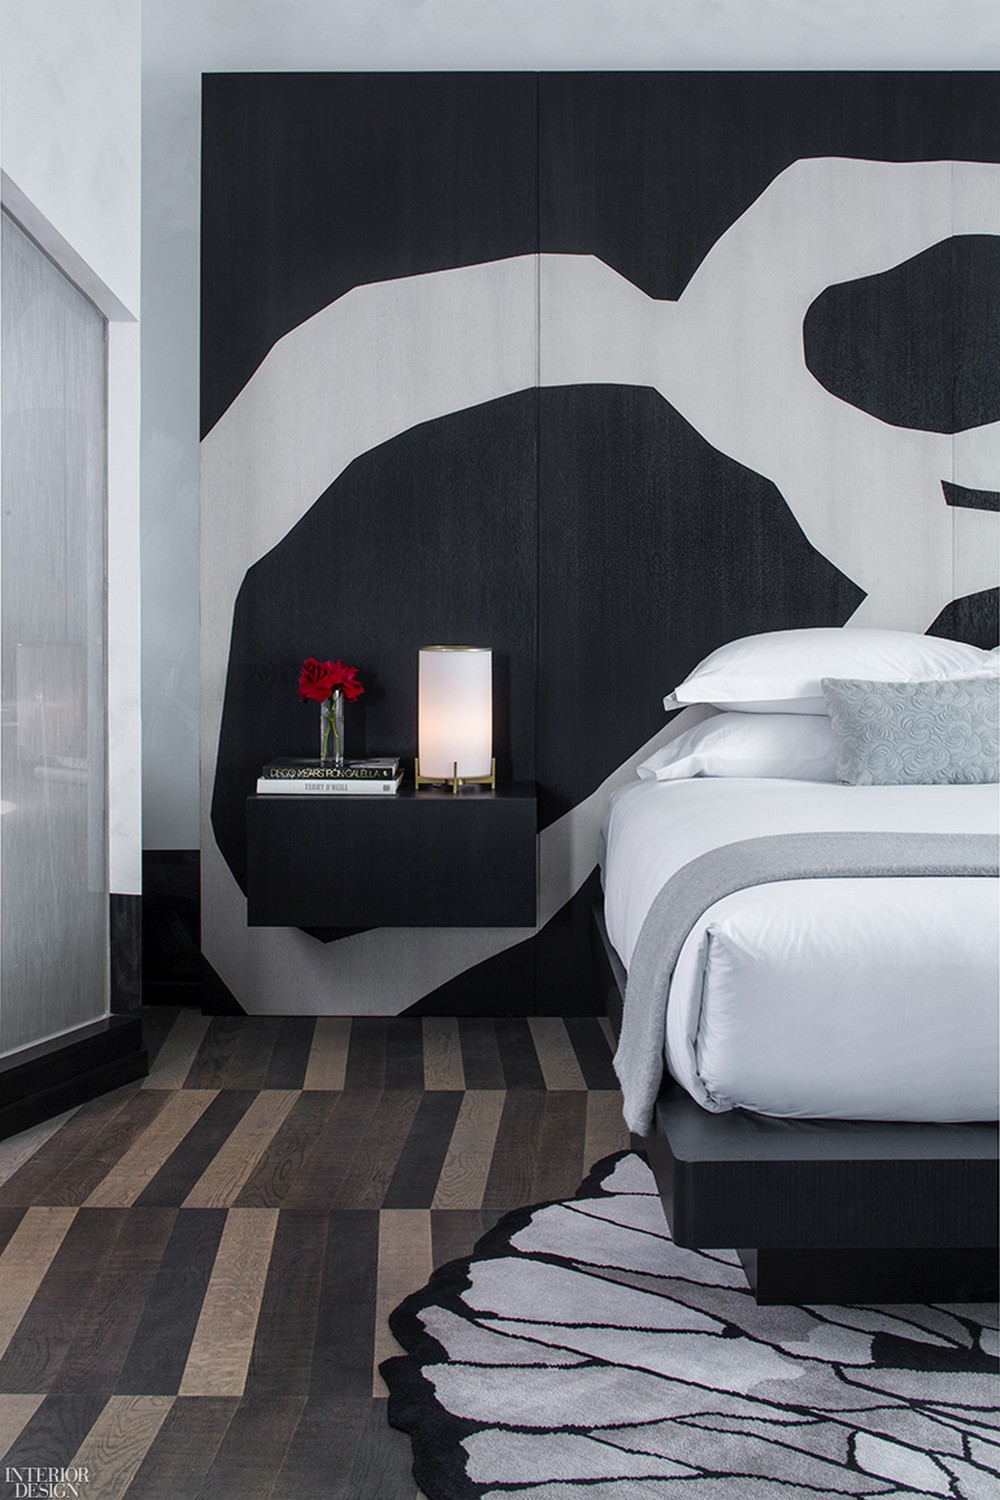 Interior Design Shows 5 Incredible Boutique Hotels To Visit In 2019 boutique hotels Interior Design Shows 5 Incredible Boutique Hotels To Visit In 2019 Interior Design Shows 5 Incredible Boutique Hotels To Visit In 2019 4